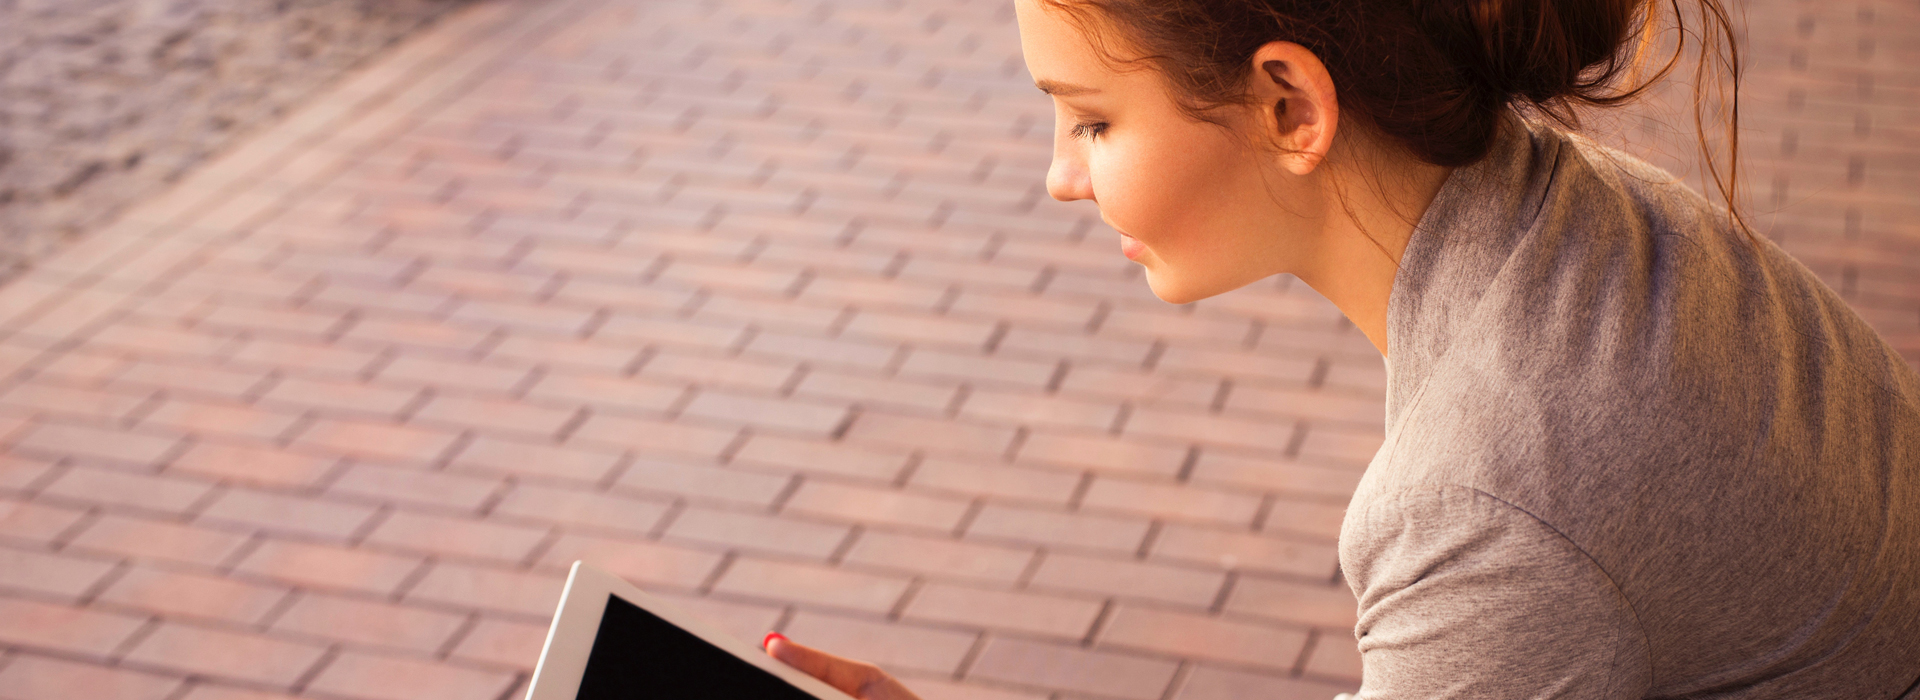 A woman sits outside, reading from a tablet.